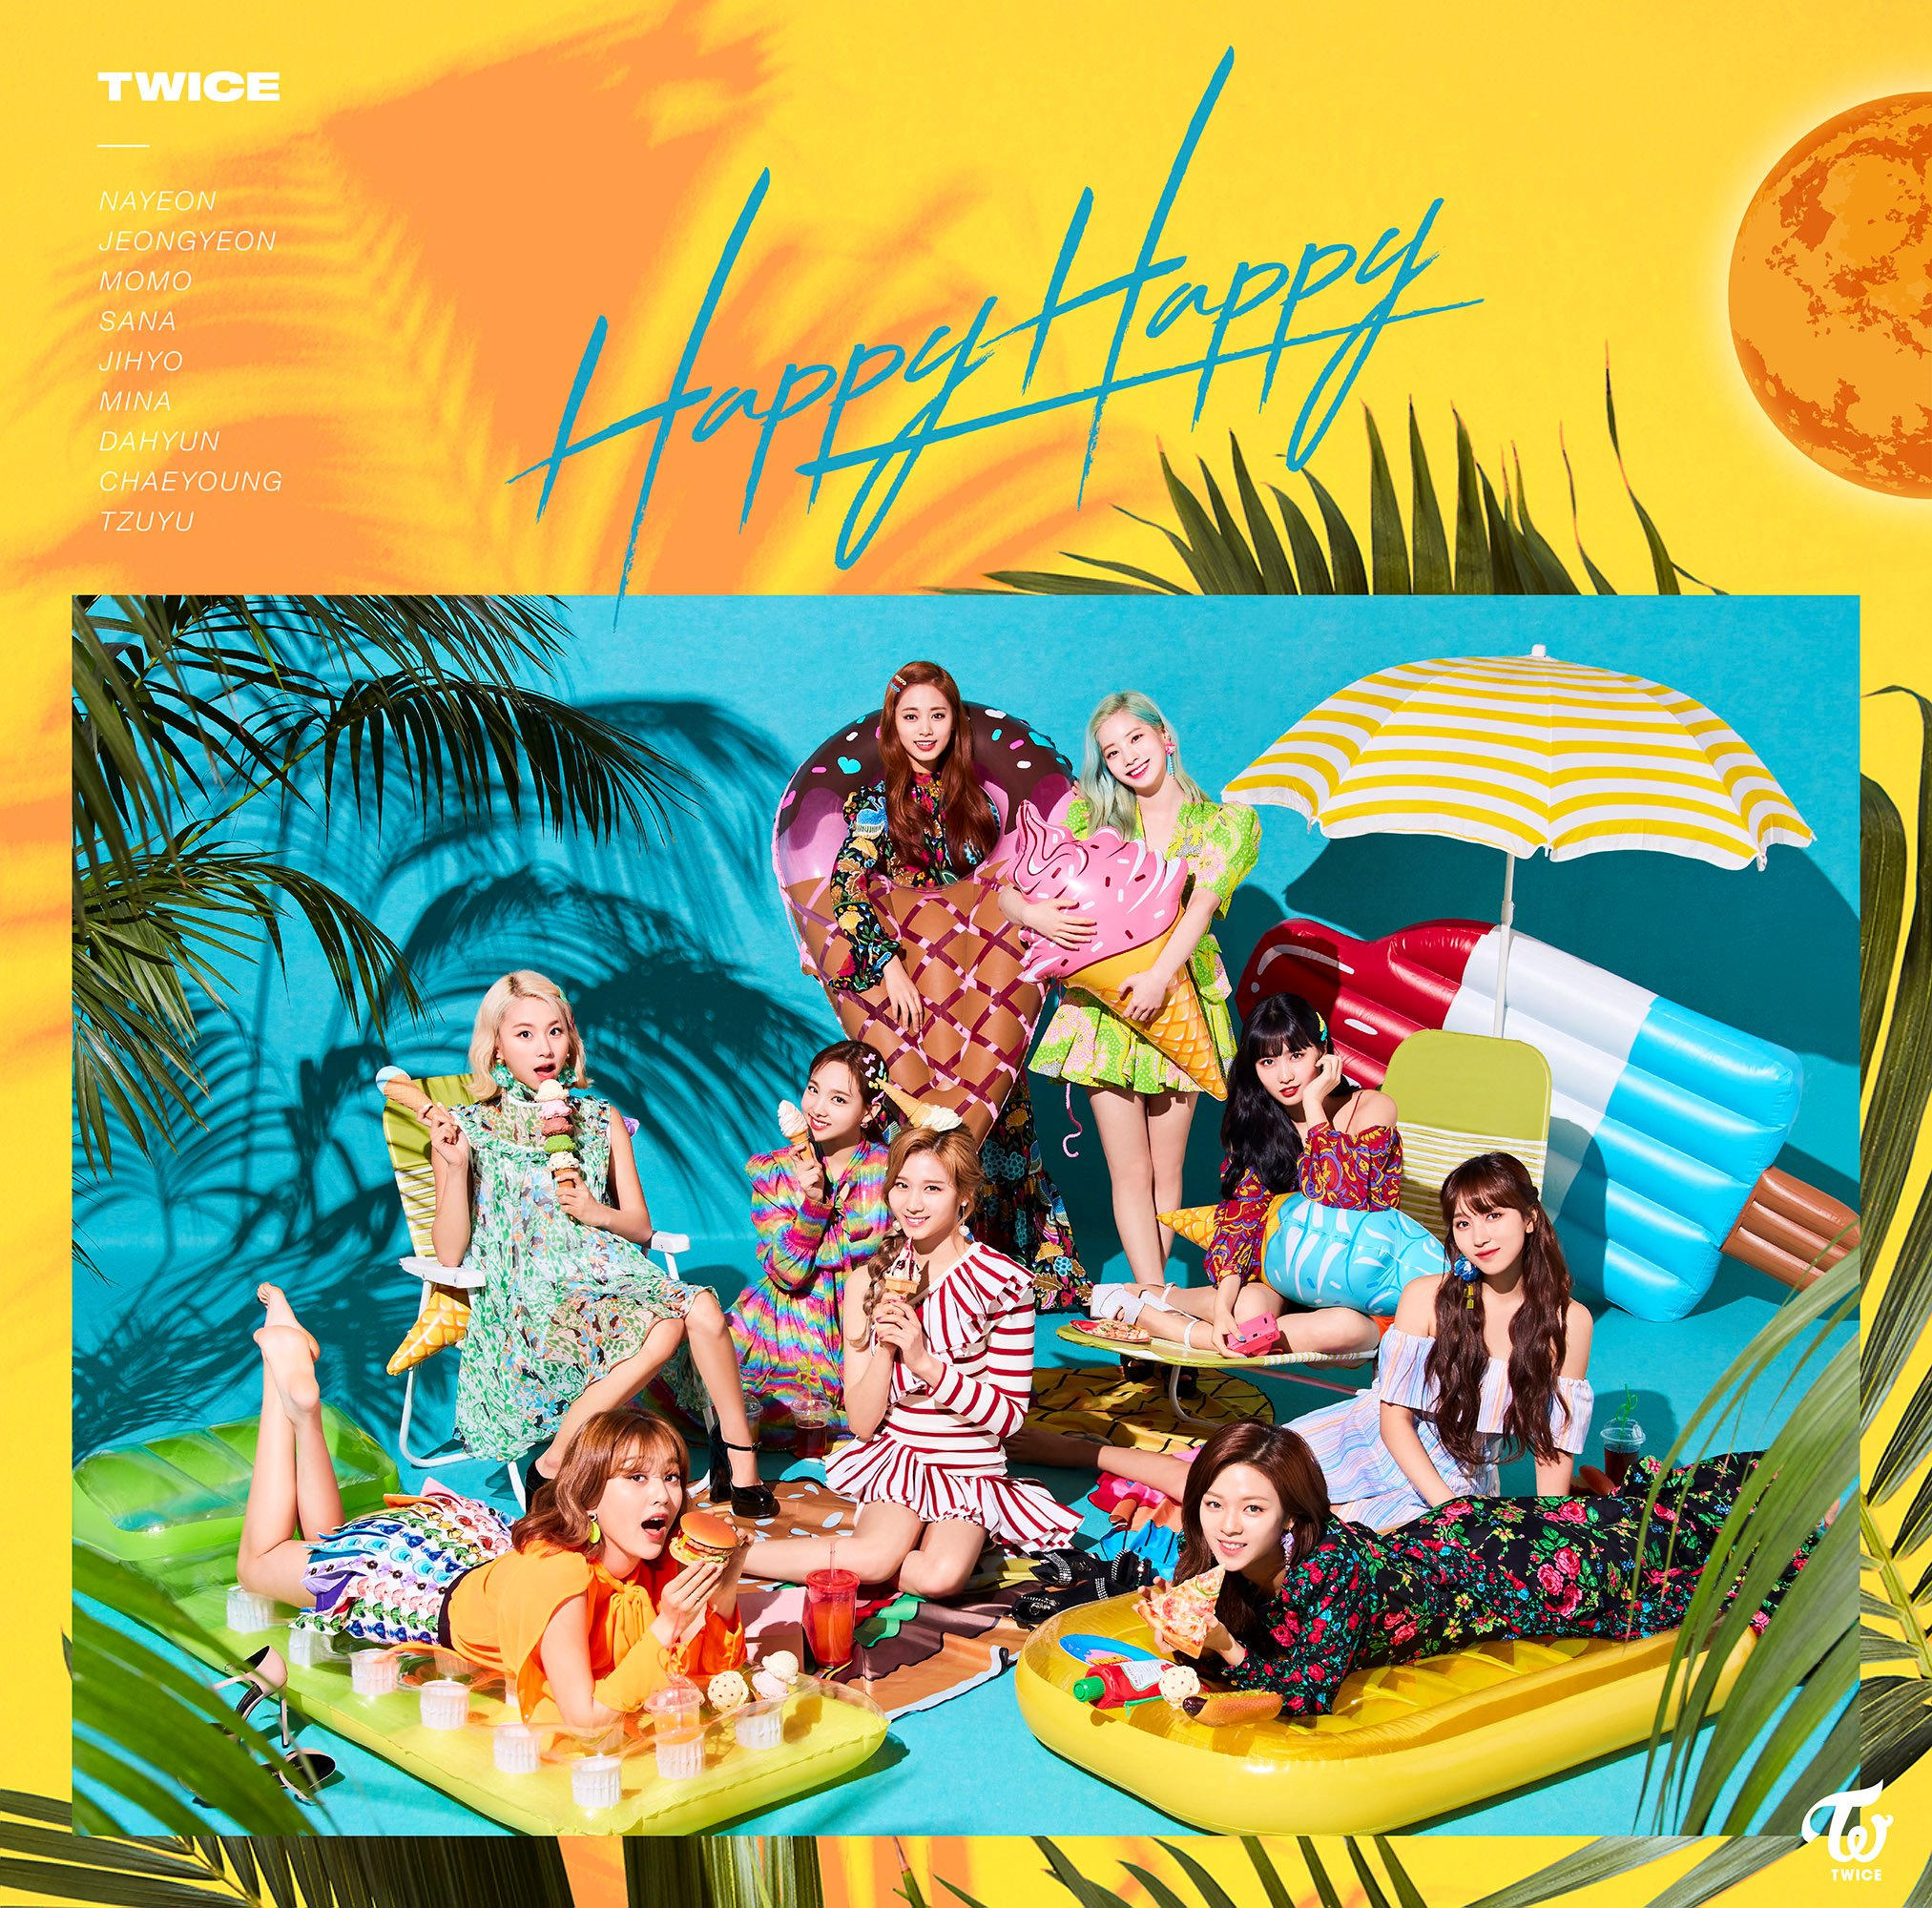 TWICE - Happy Happy Download MP3 320K DL ZIP/RAR